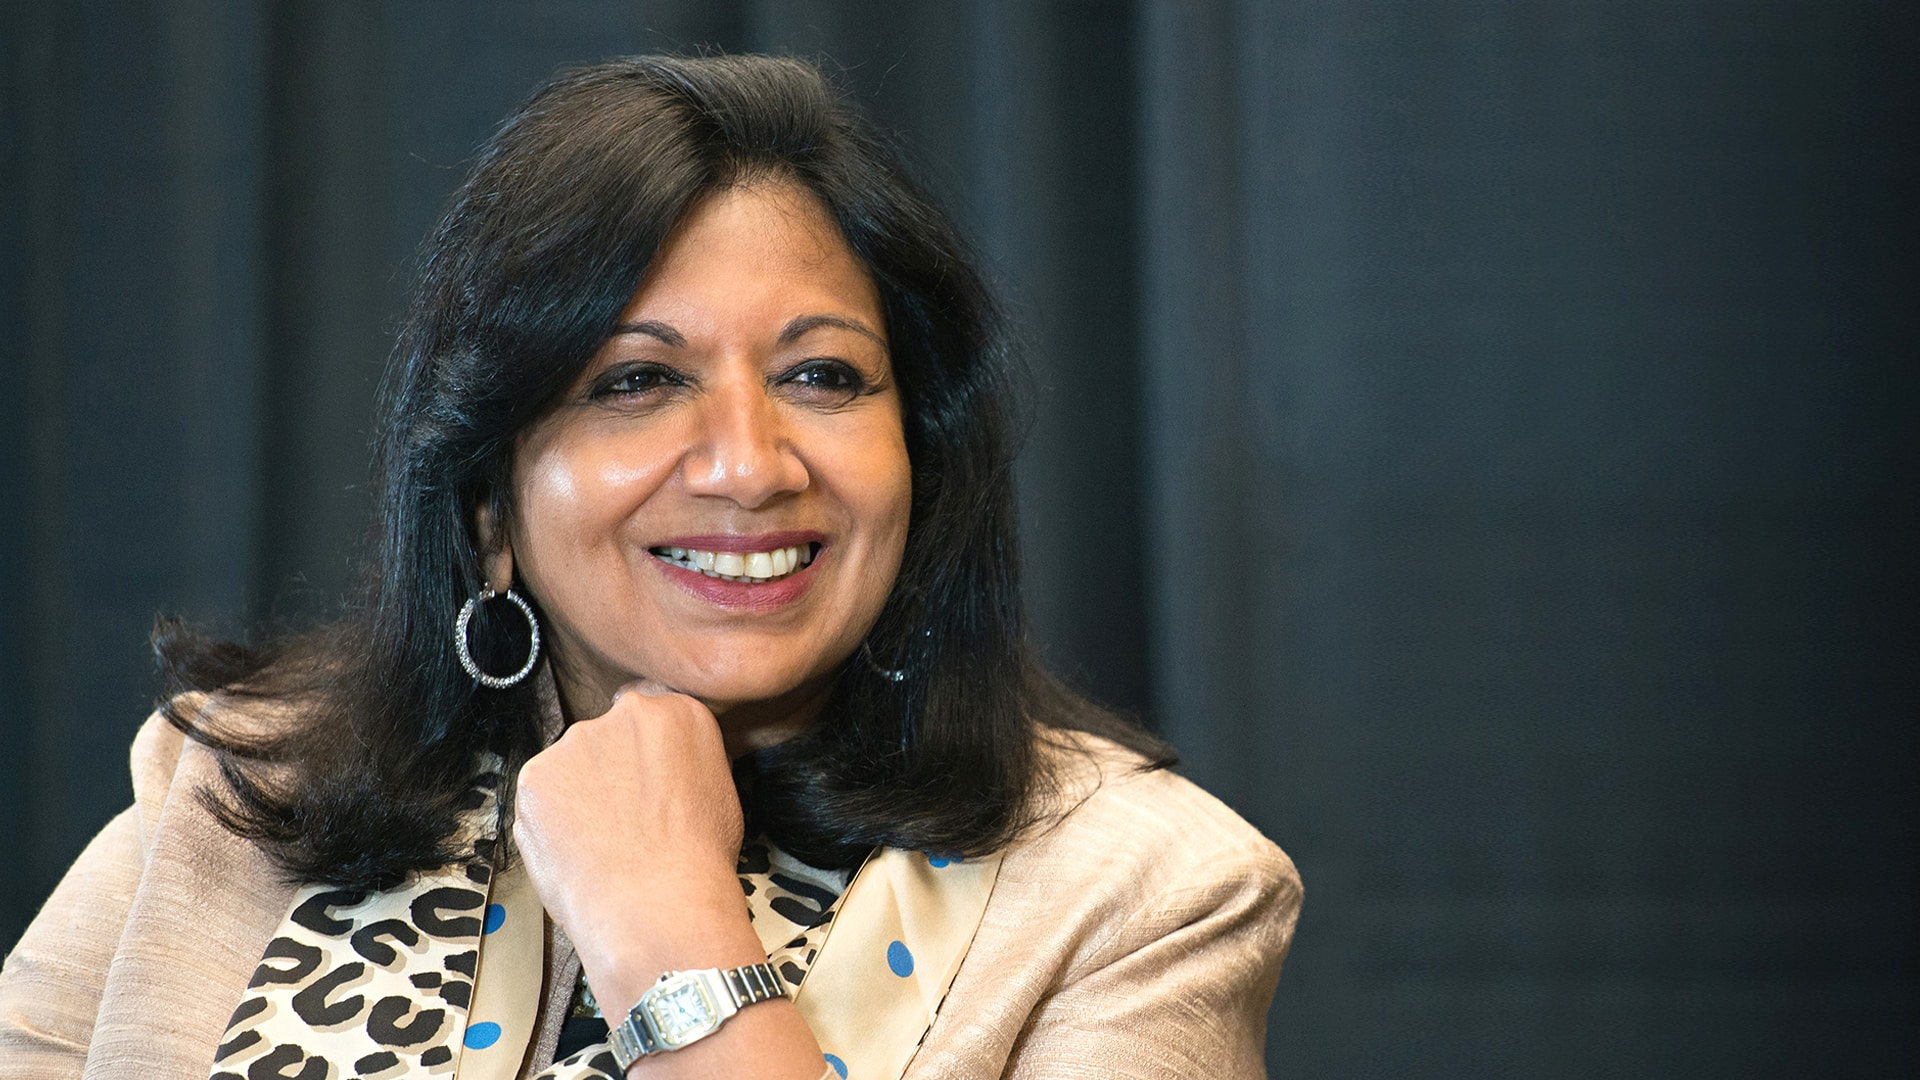 Hopefully DCGI will give EUA for Oxford's vaccine immediately after MHRA nod: Mazumdar-Shaw